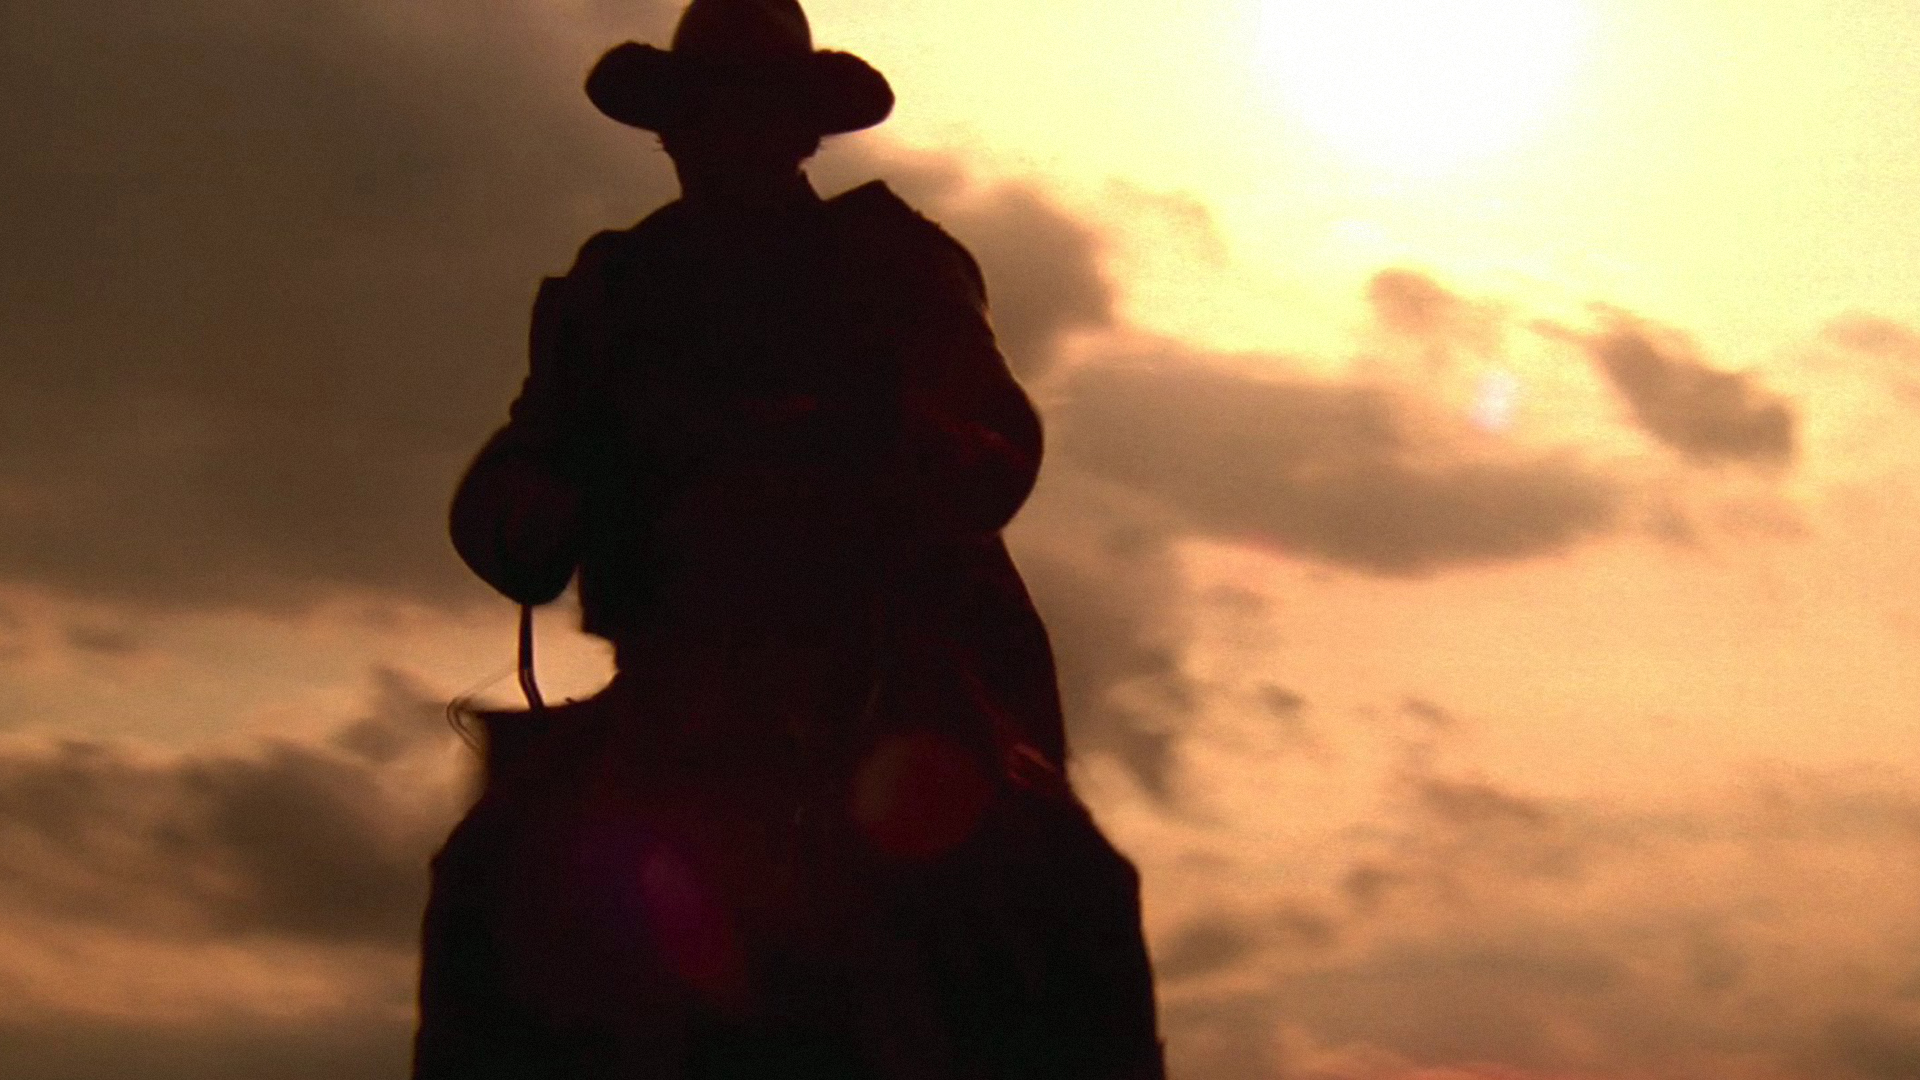 cowboy at sunset hd wallpaper western wallpapers pictures